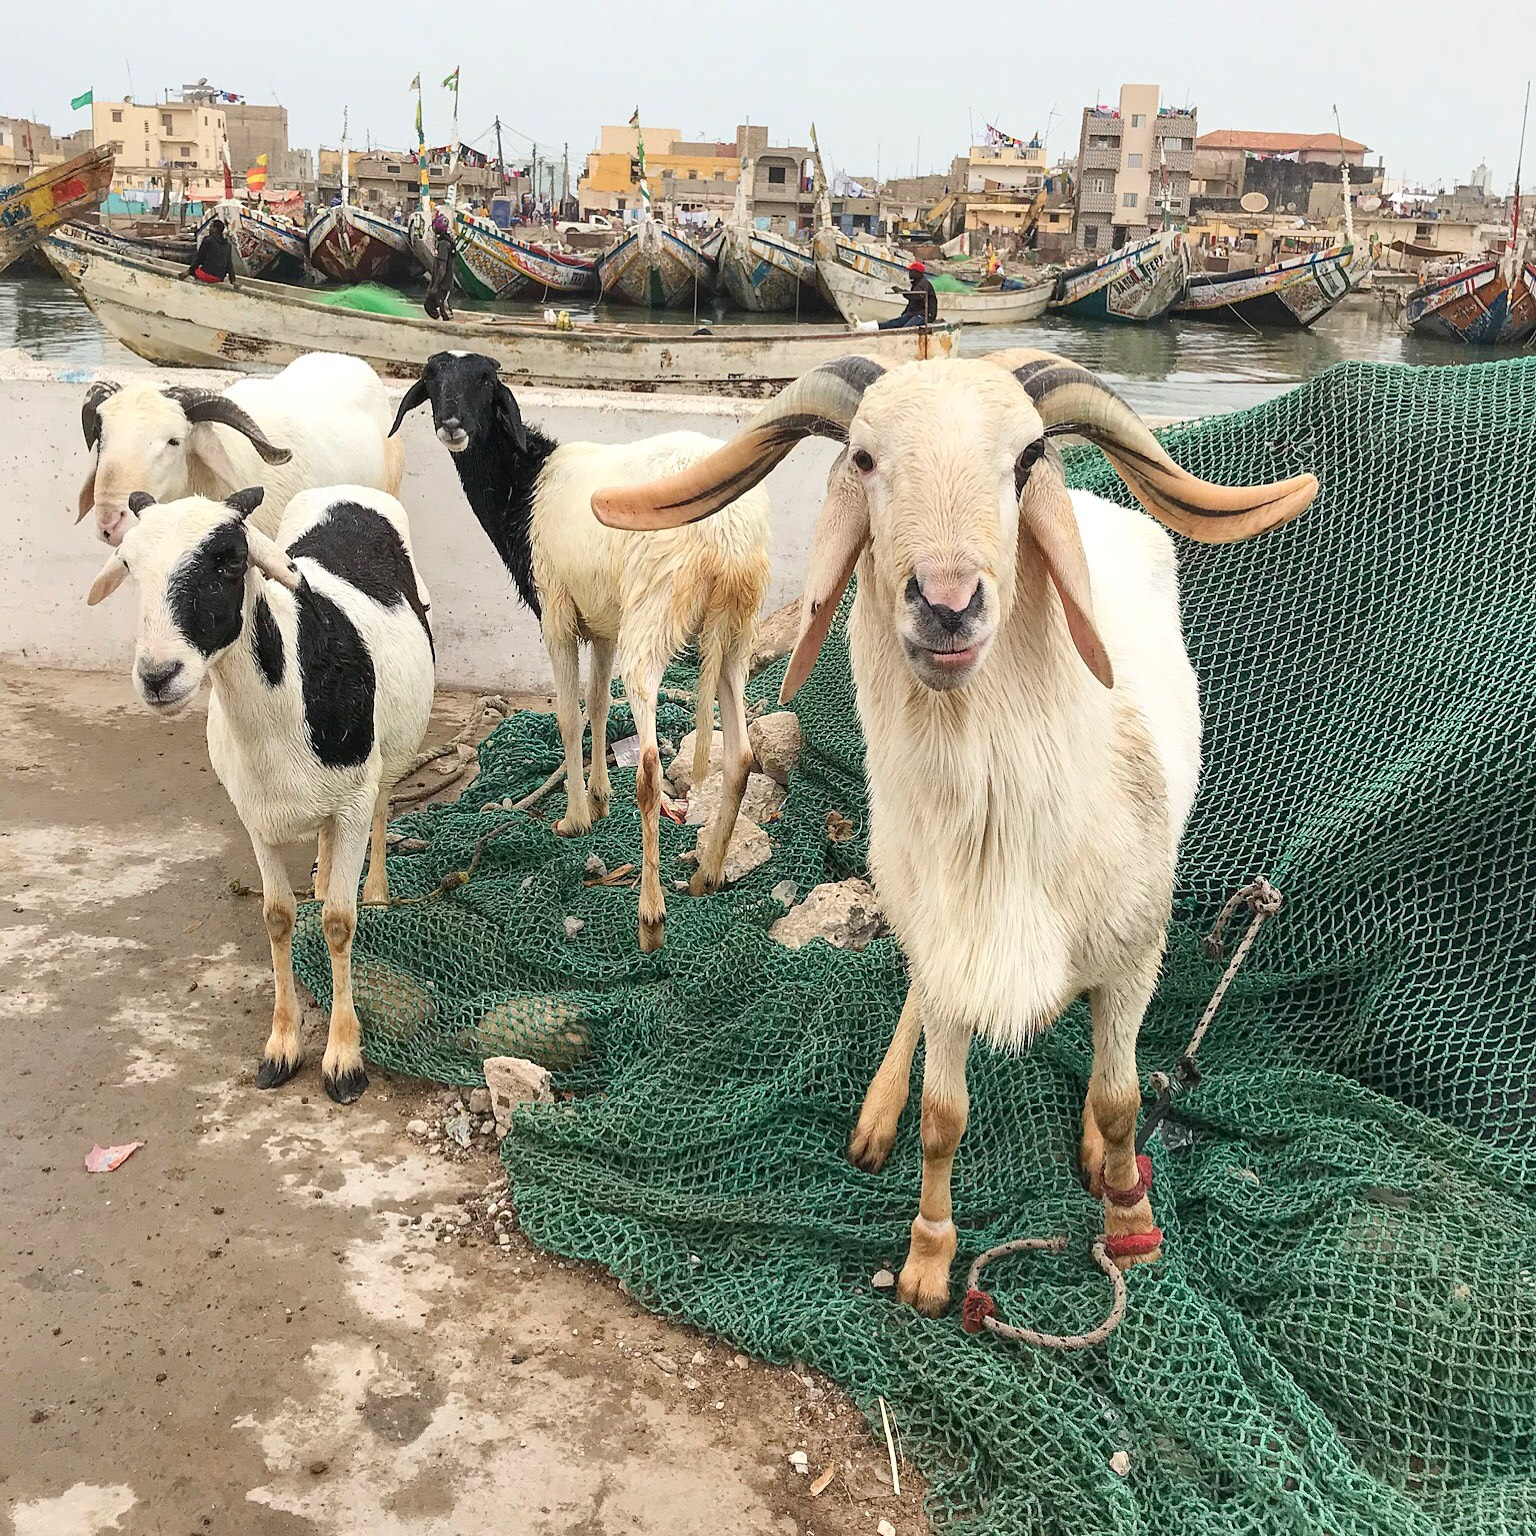 Goats on the pier